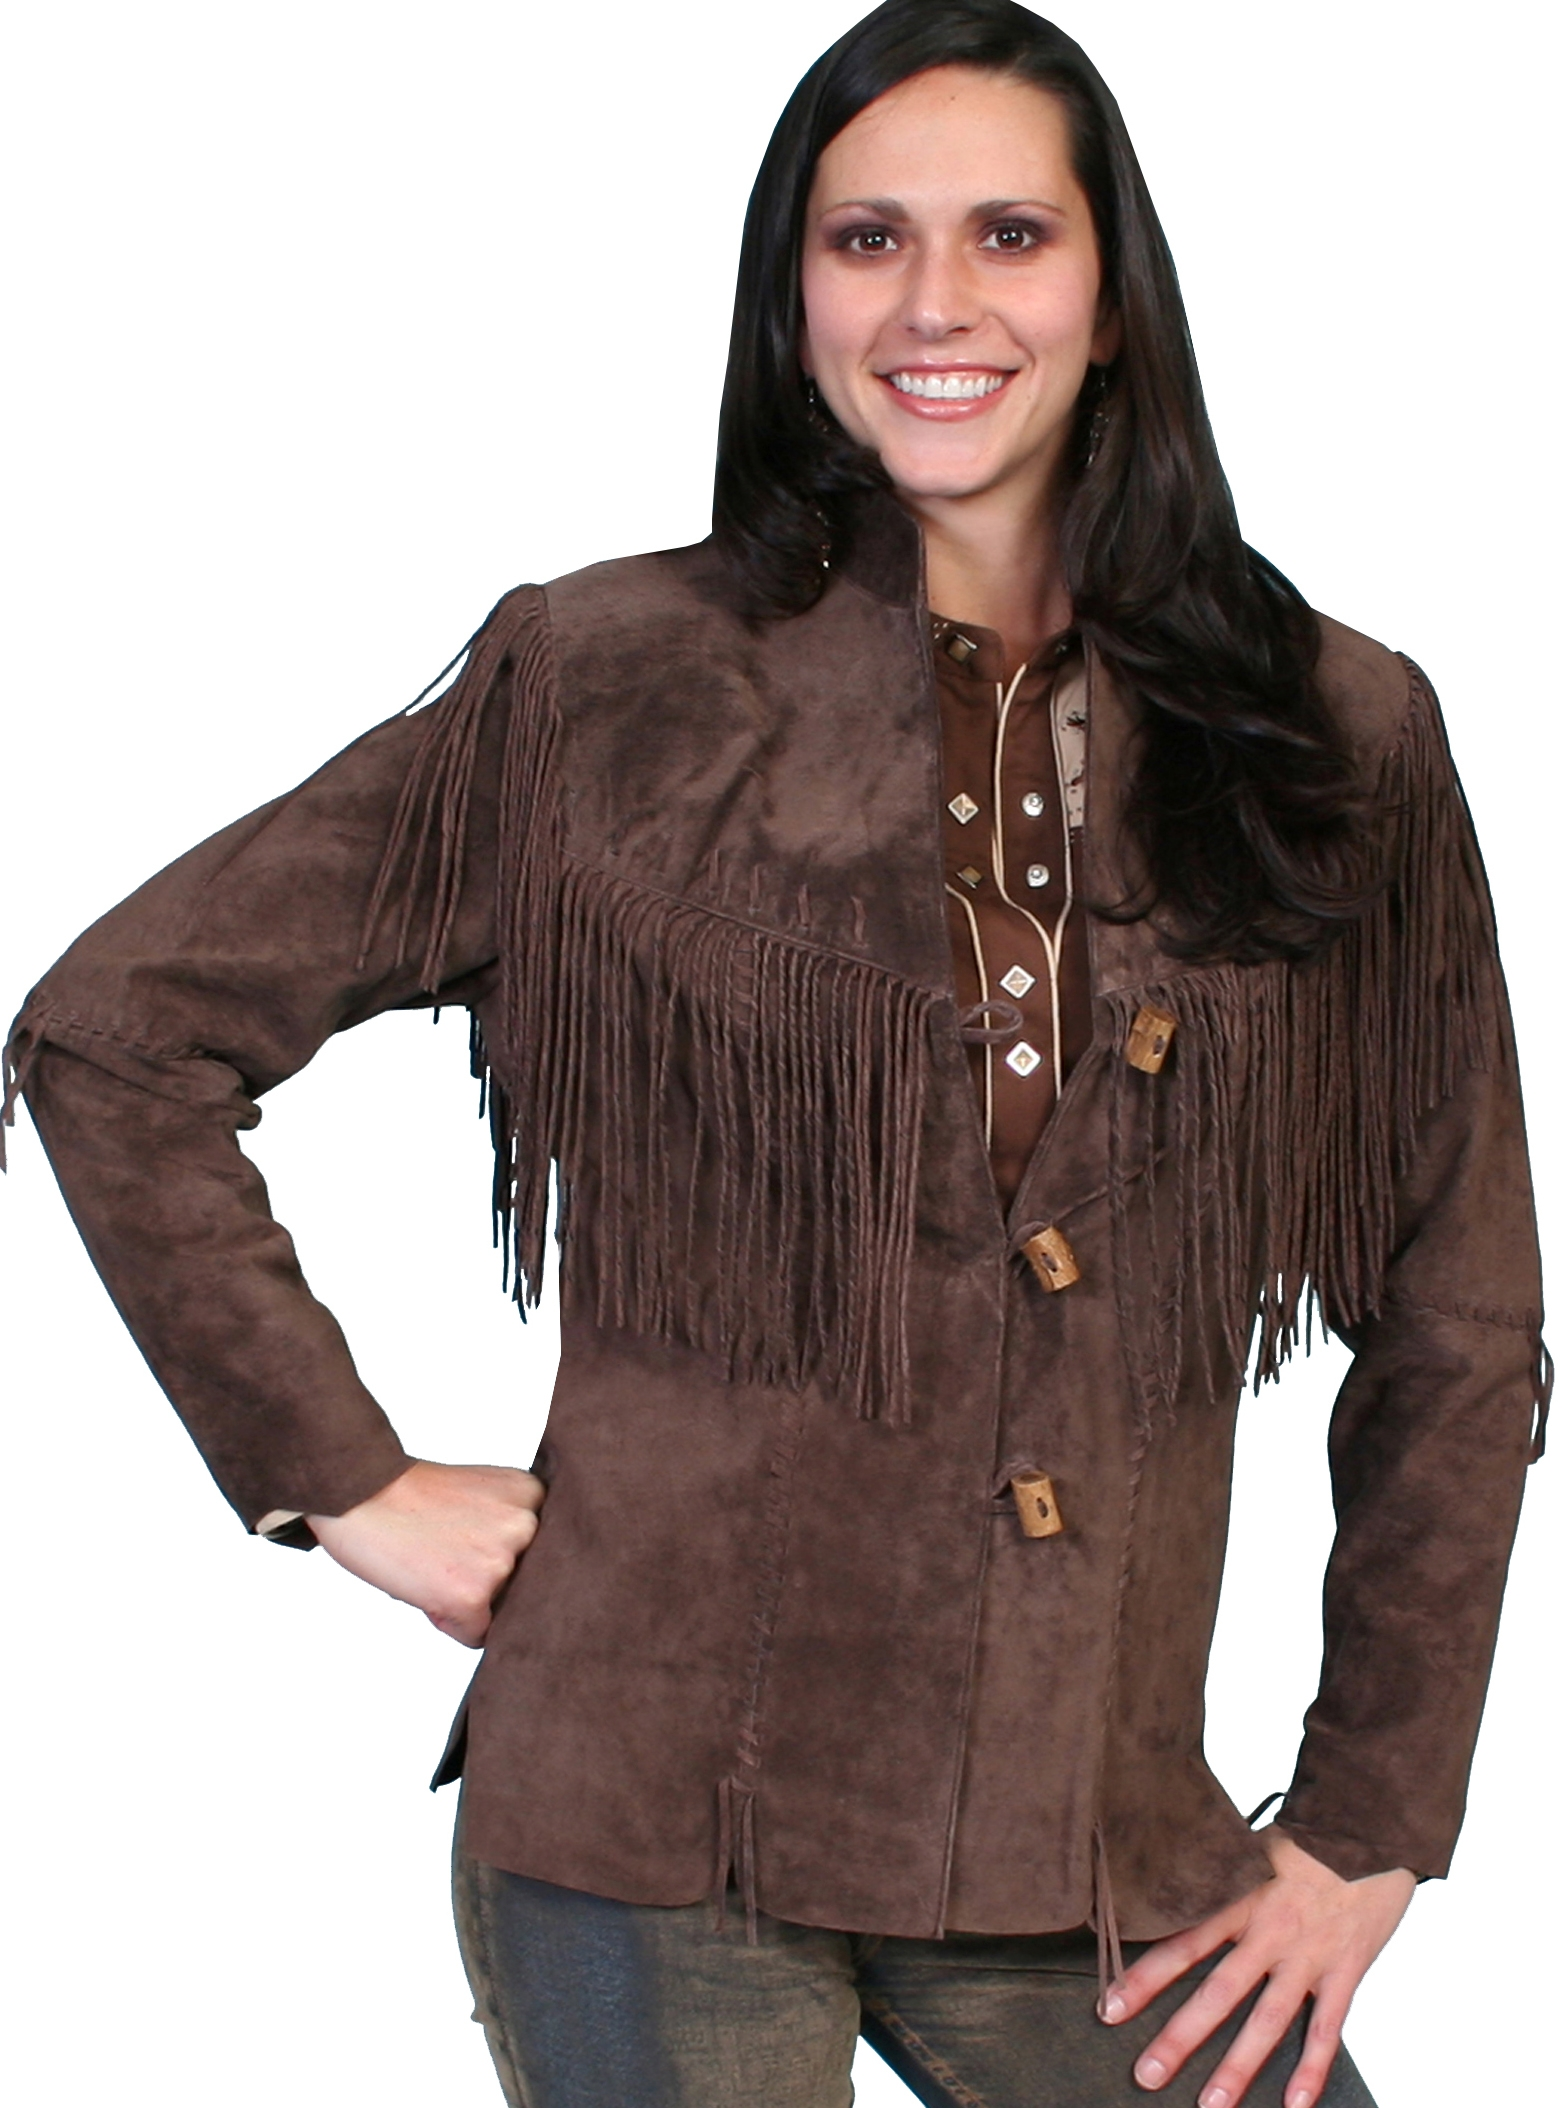 Womens western coats, womens fringe jackets, fringe coats for women